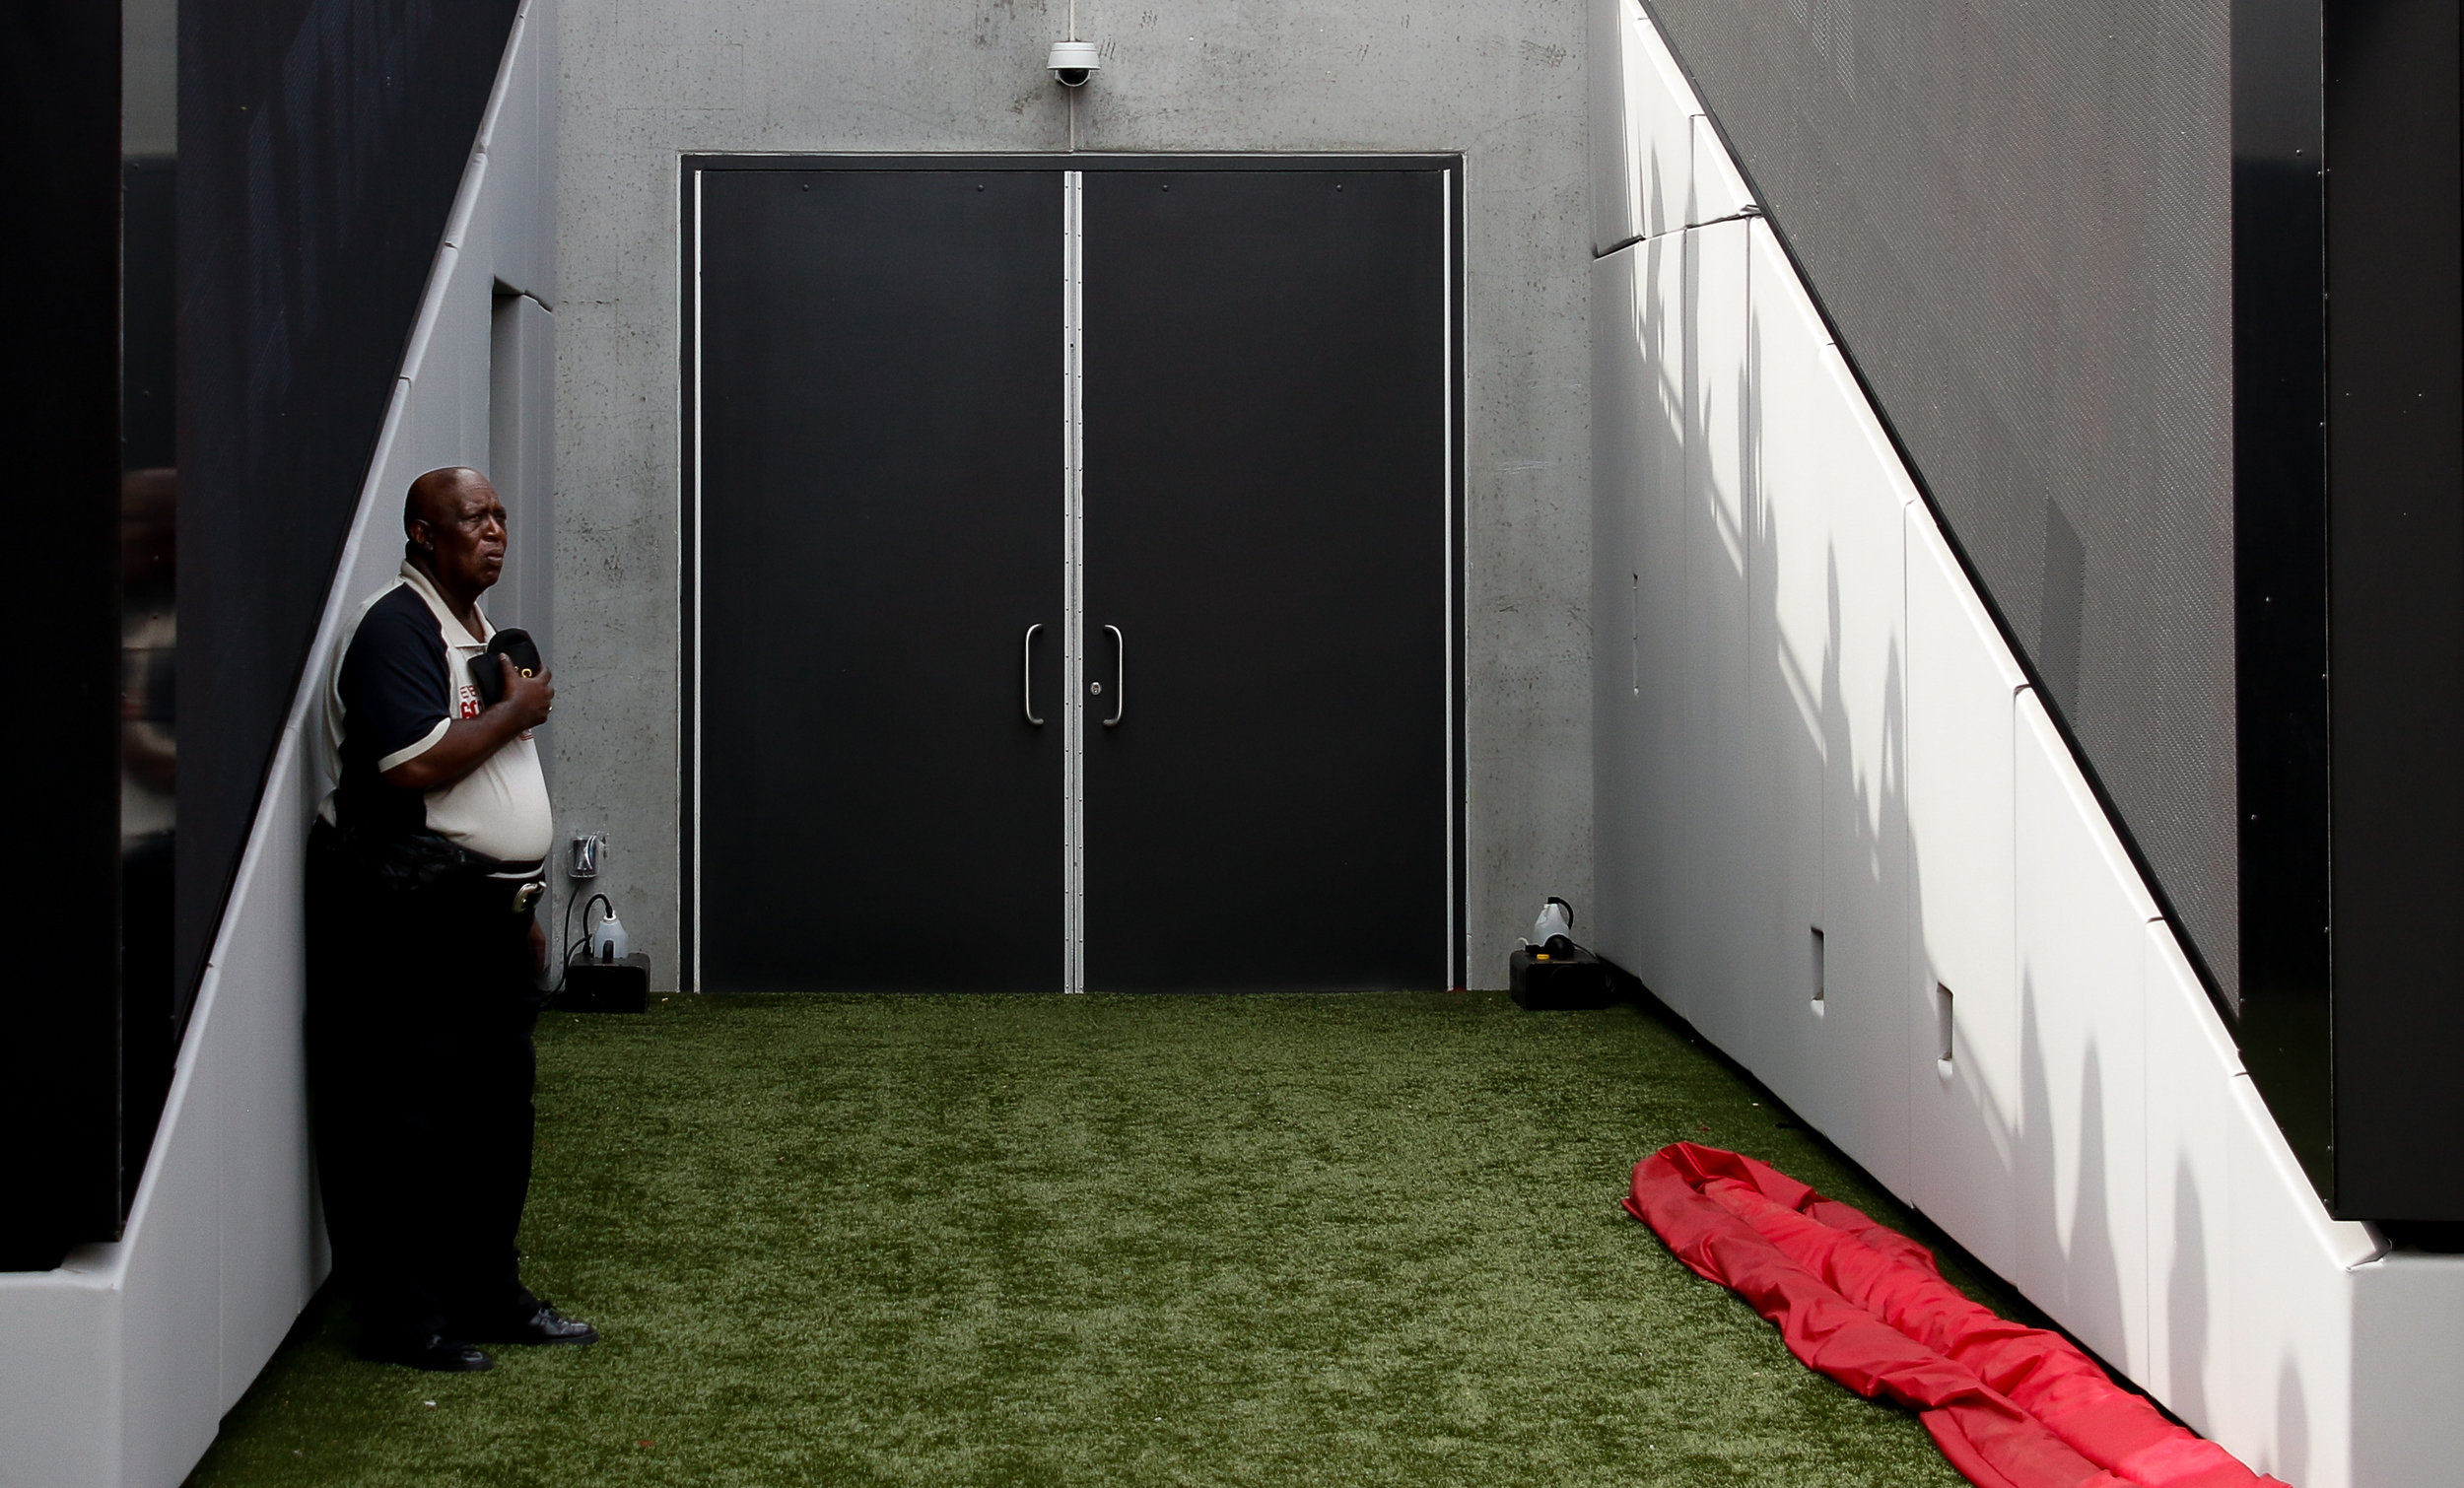 A member of the event staff stands outside of the Georgia Bulldogs' locker room during the National Anthem in Sanford Stadium on Saturday, September 29, 2018.